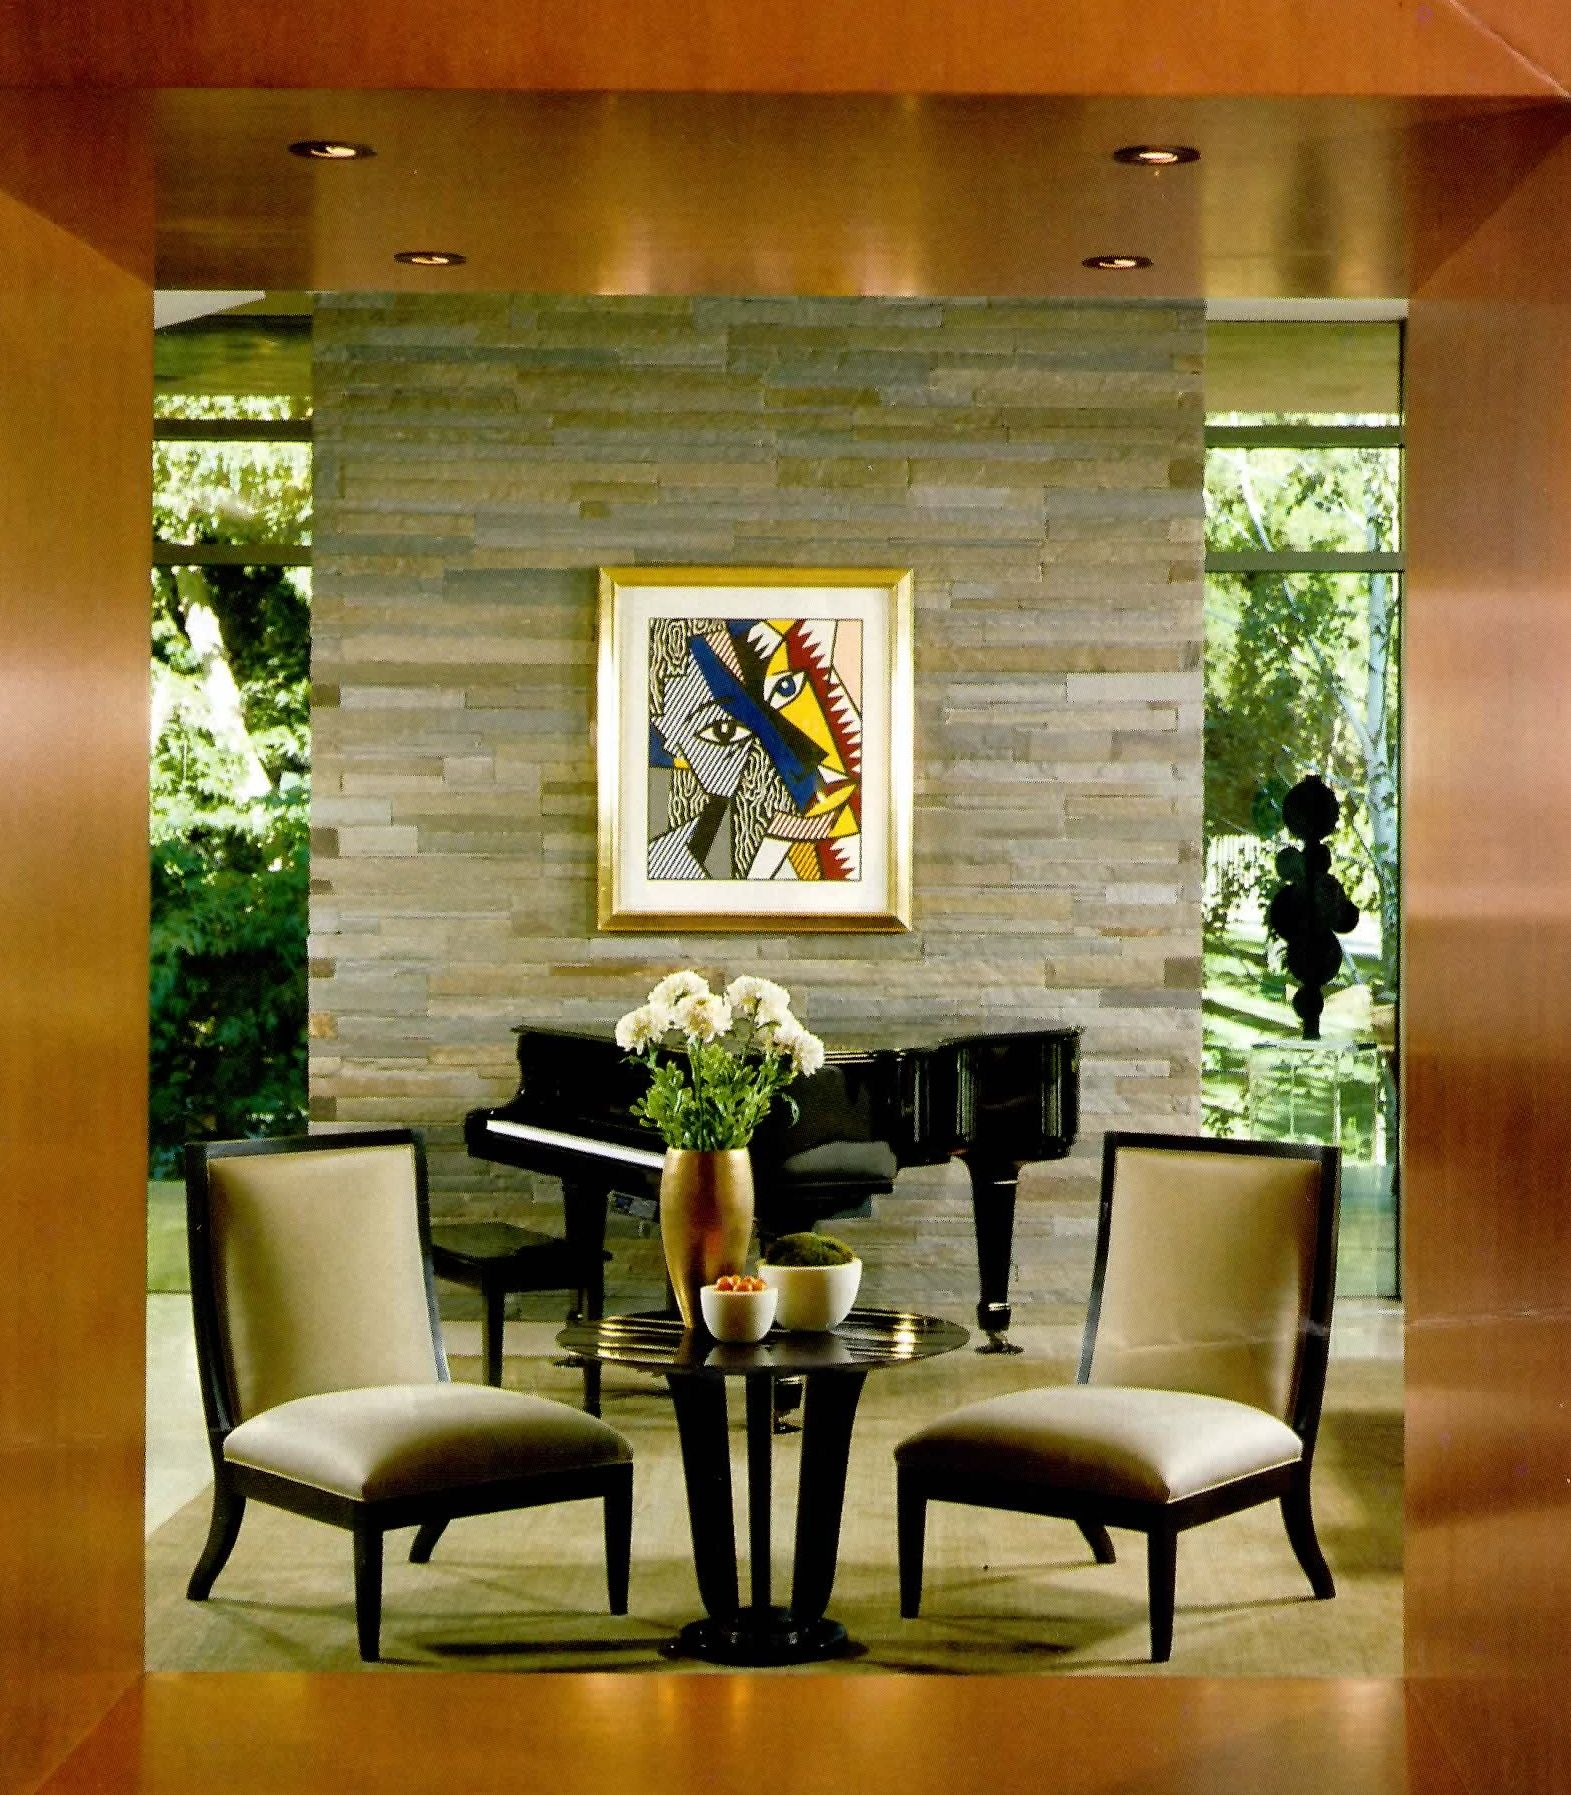 Dining Room Accent Wall With Stone And Windows: Conversation Area Symmetrical To Stone Tile Wall And